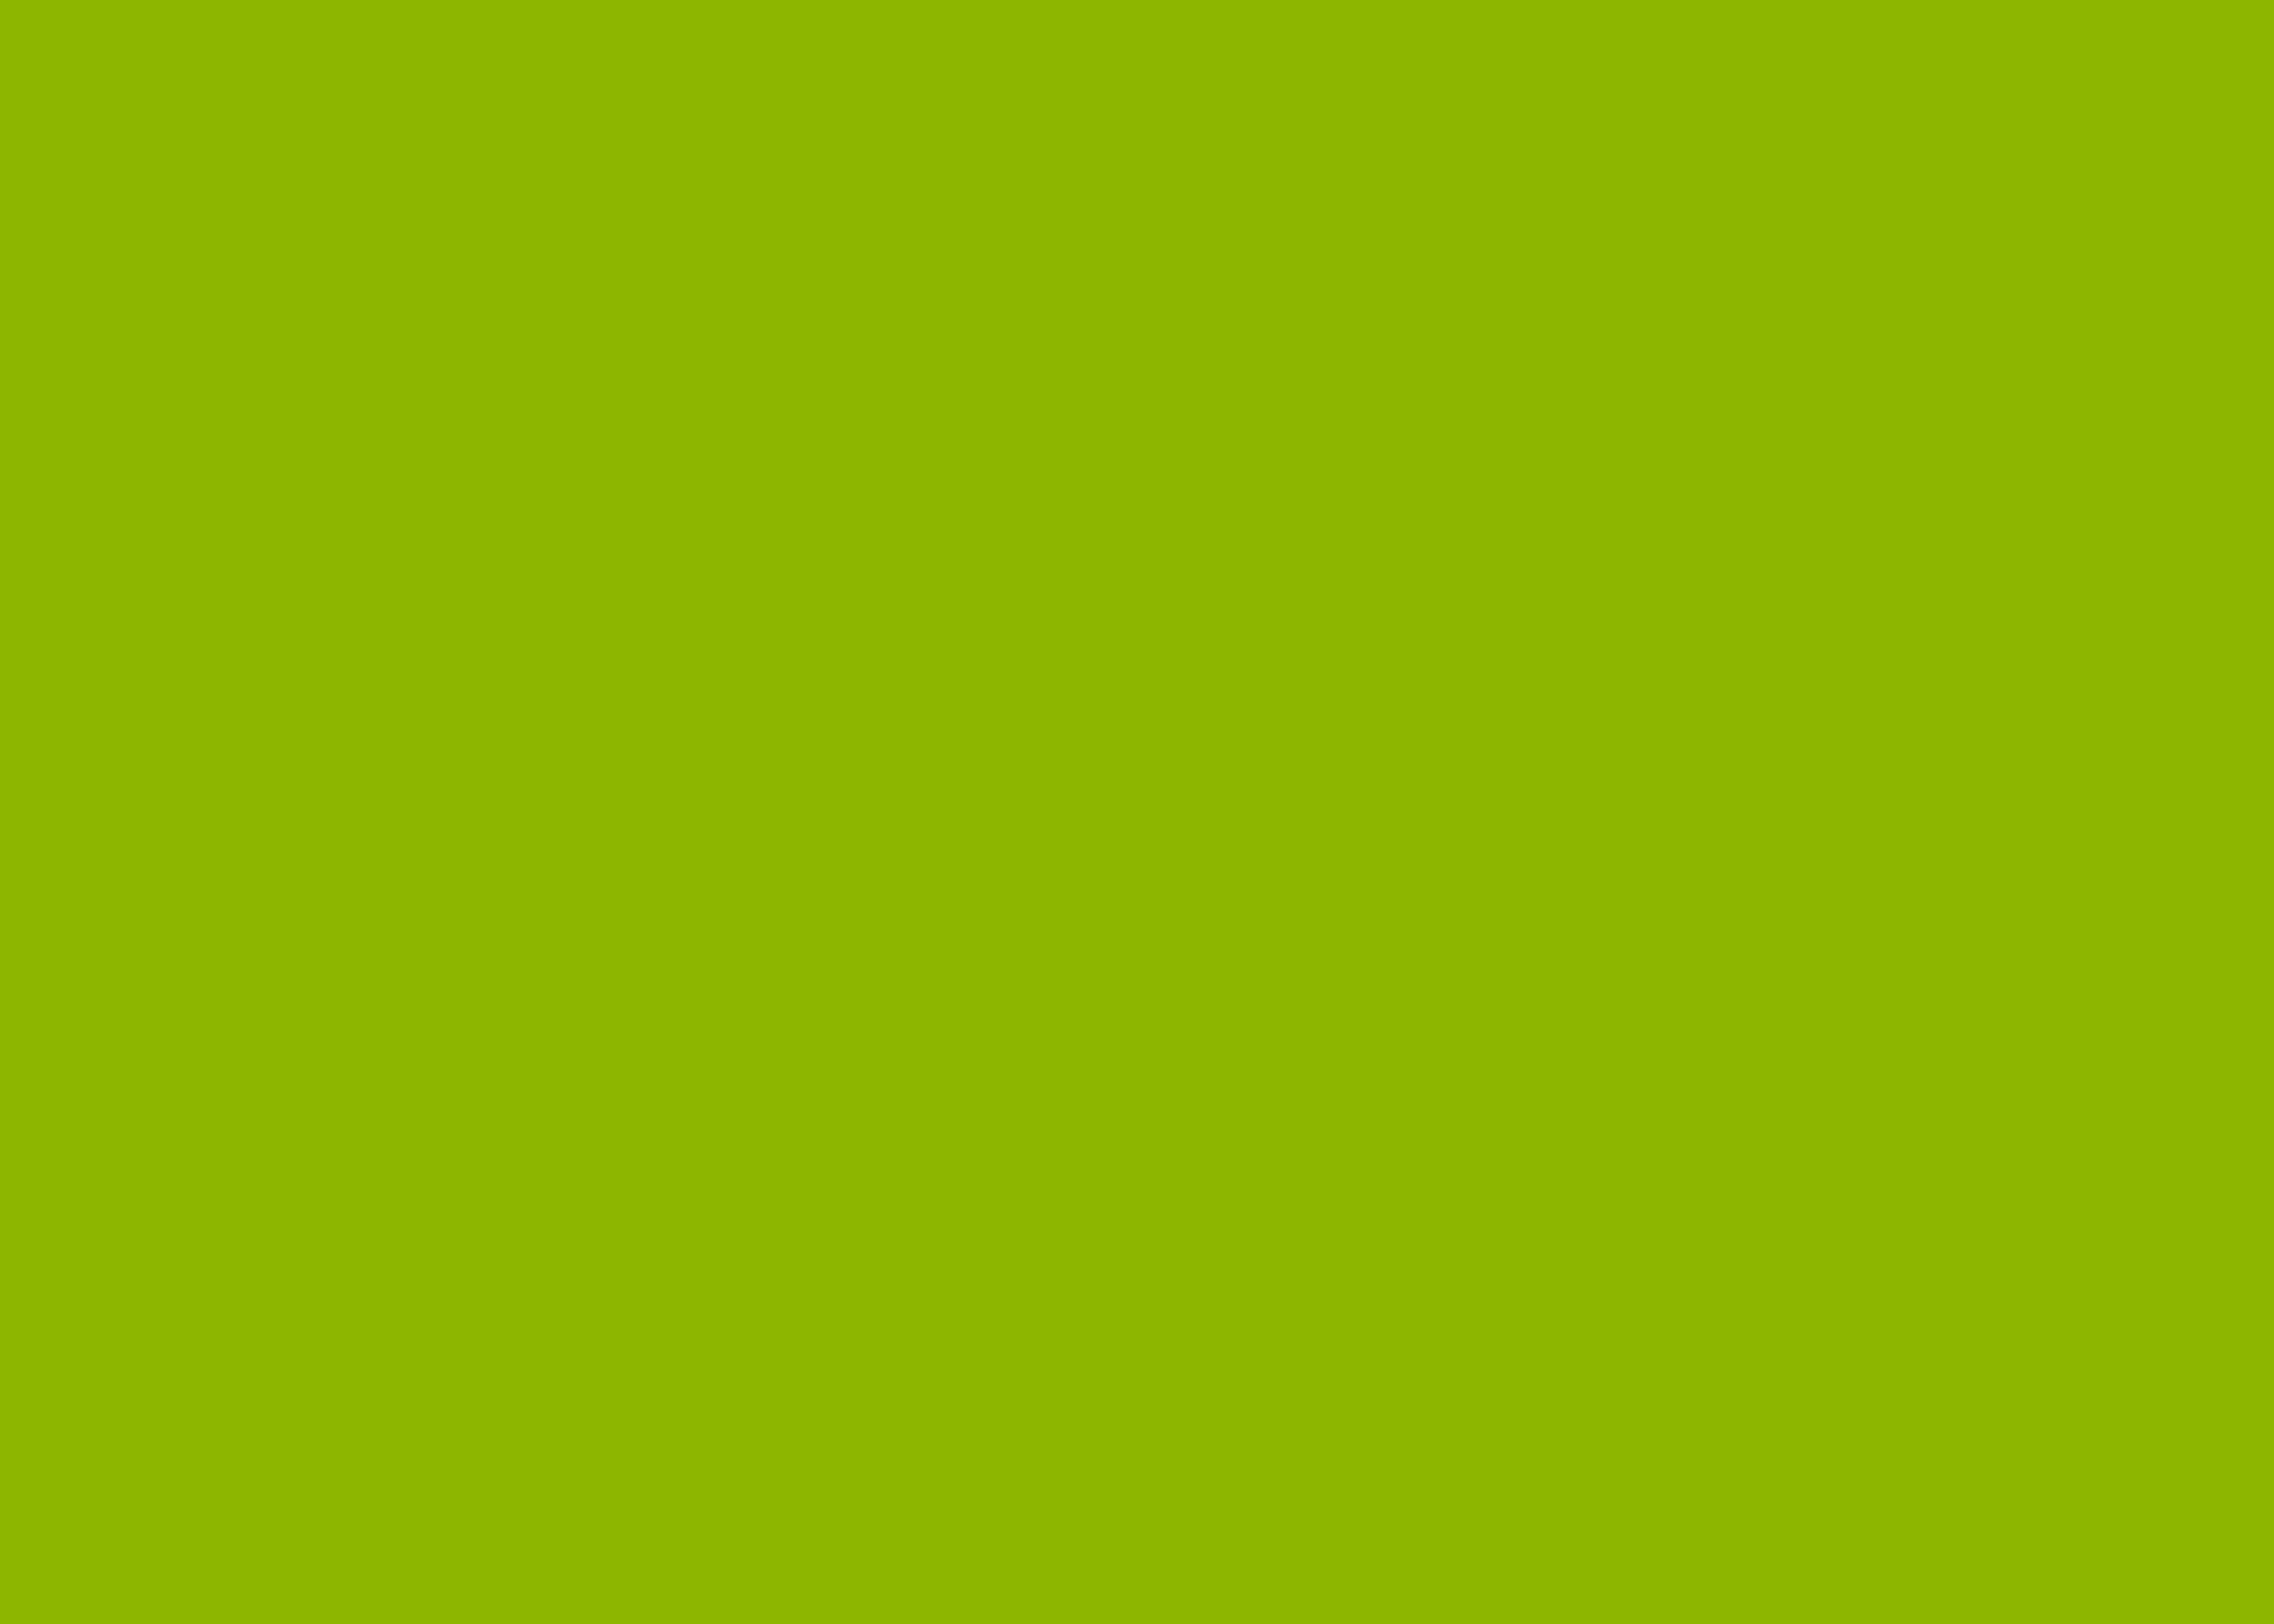 Apple Green Rgb Is A Yellow Green Color The Color Apple